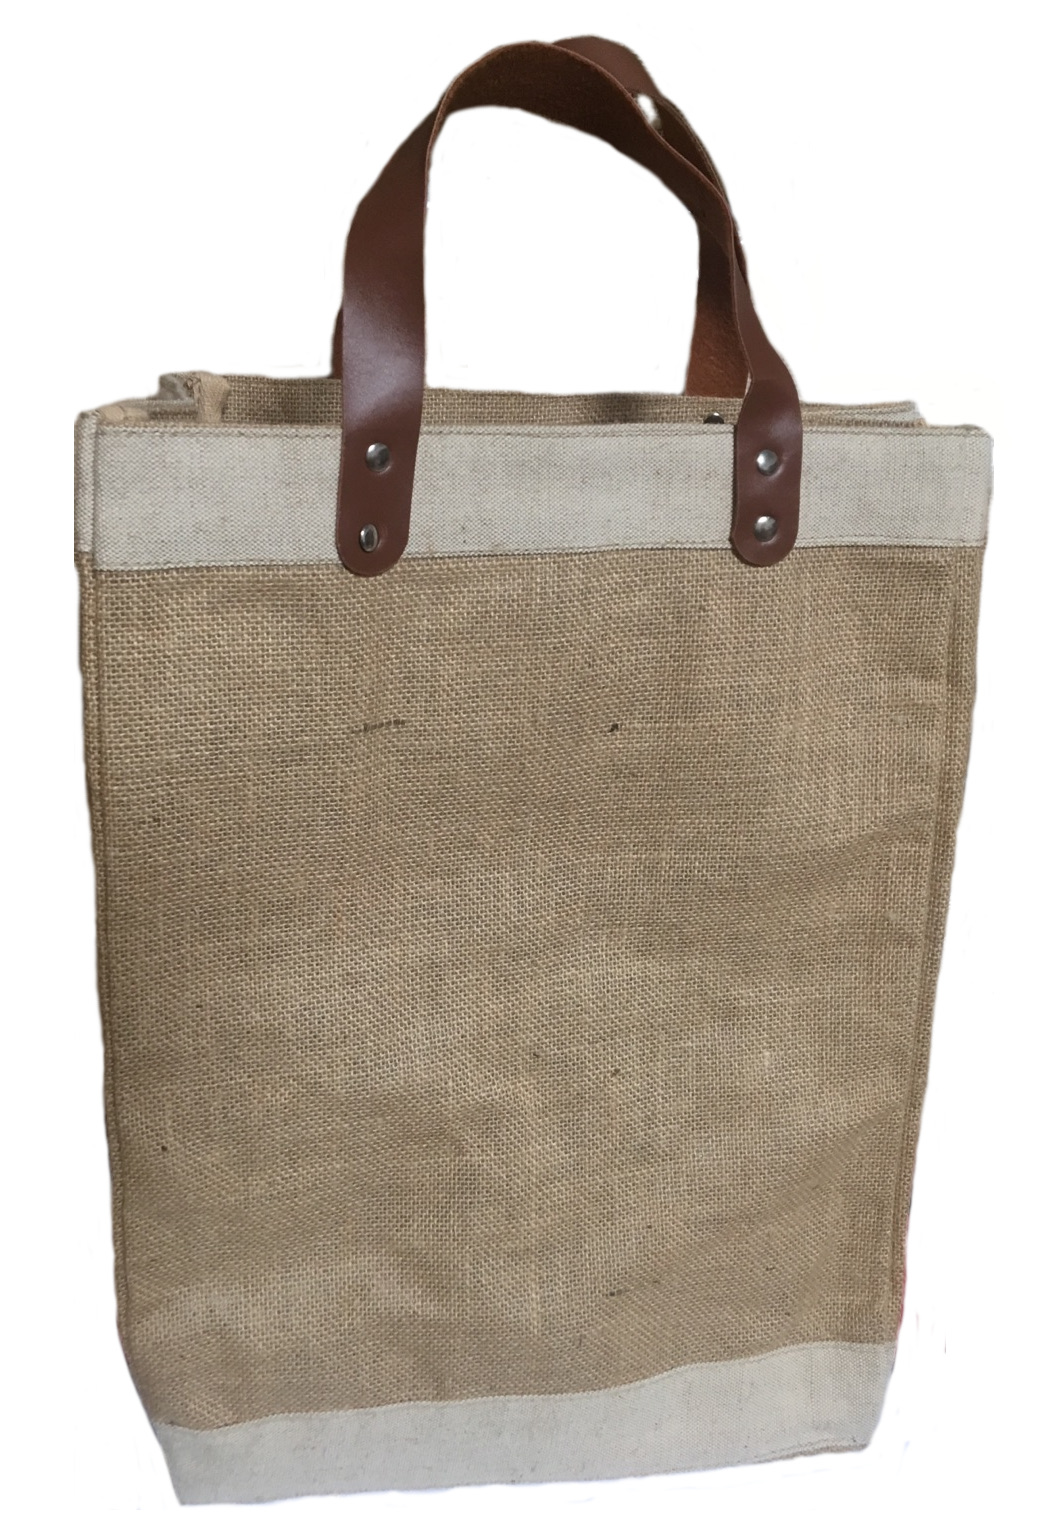 "Jute Tote Bag With Faux Leather Handles 13""W x 18""H x 7.5""G"